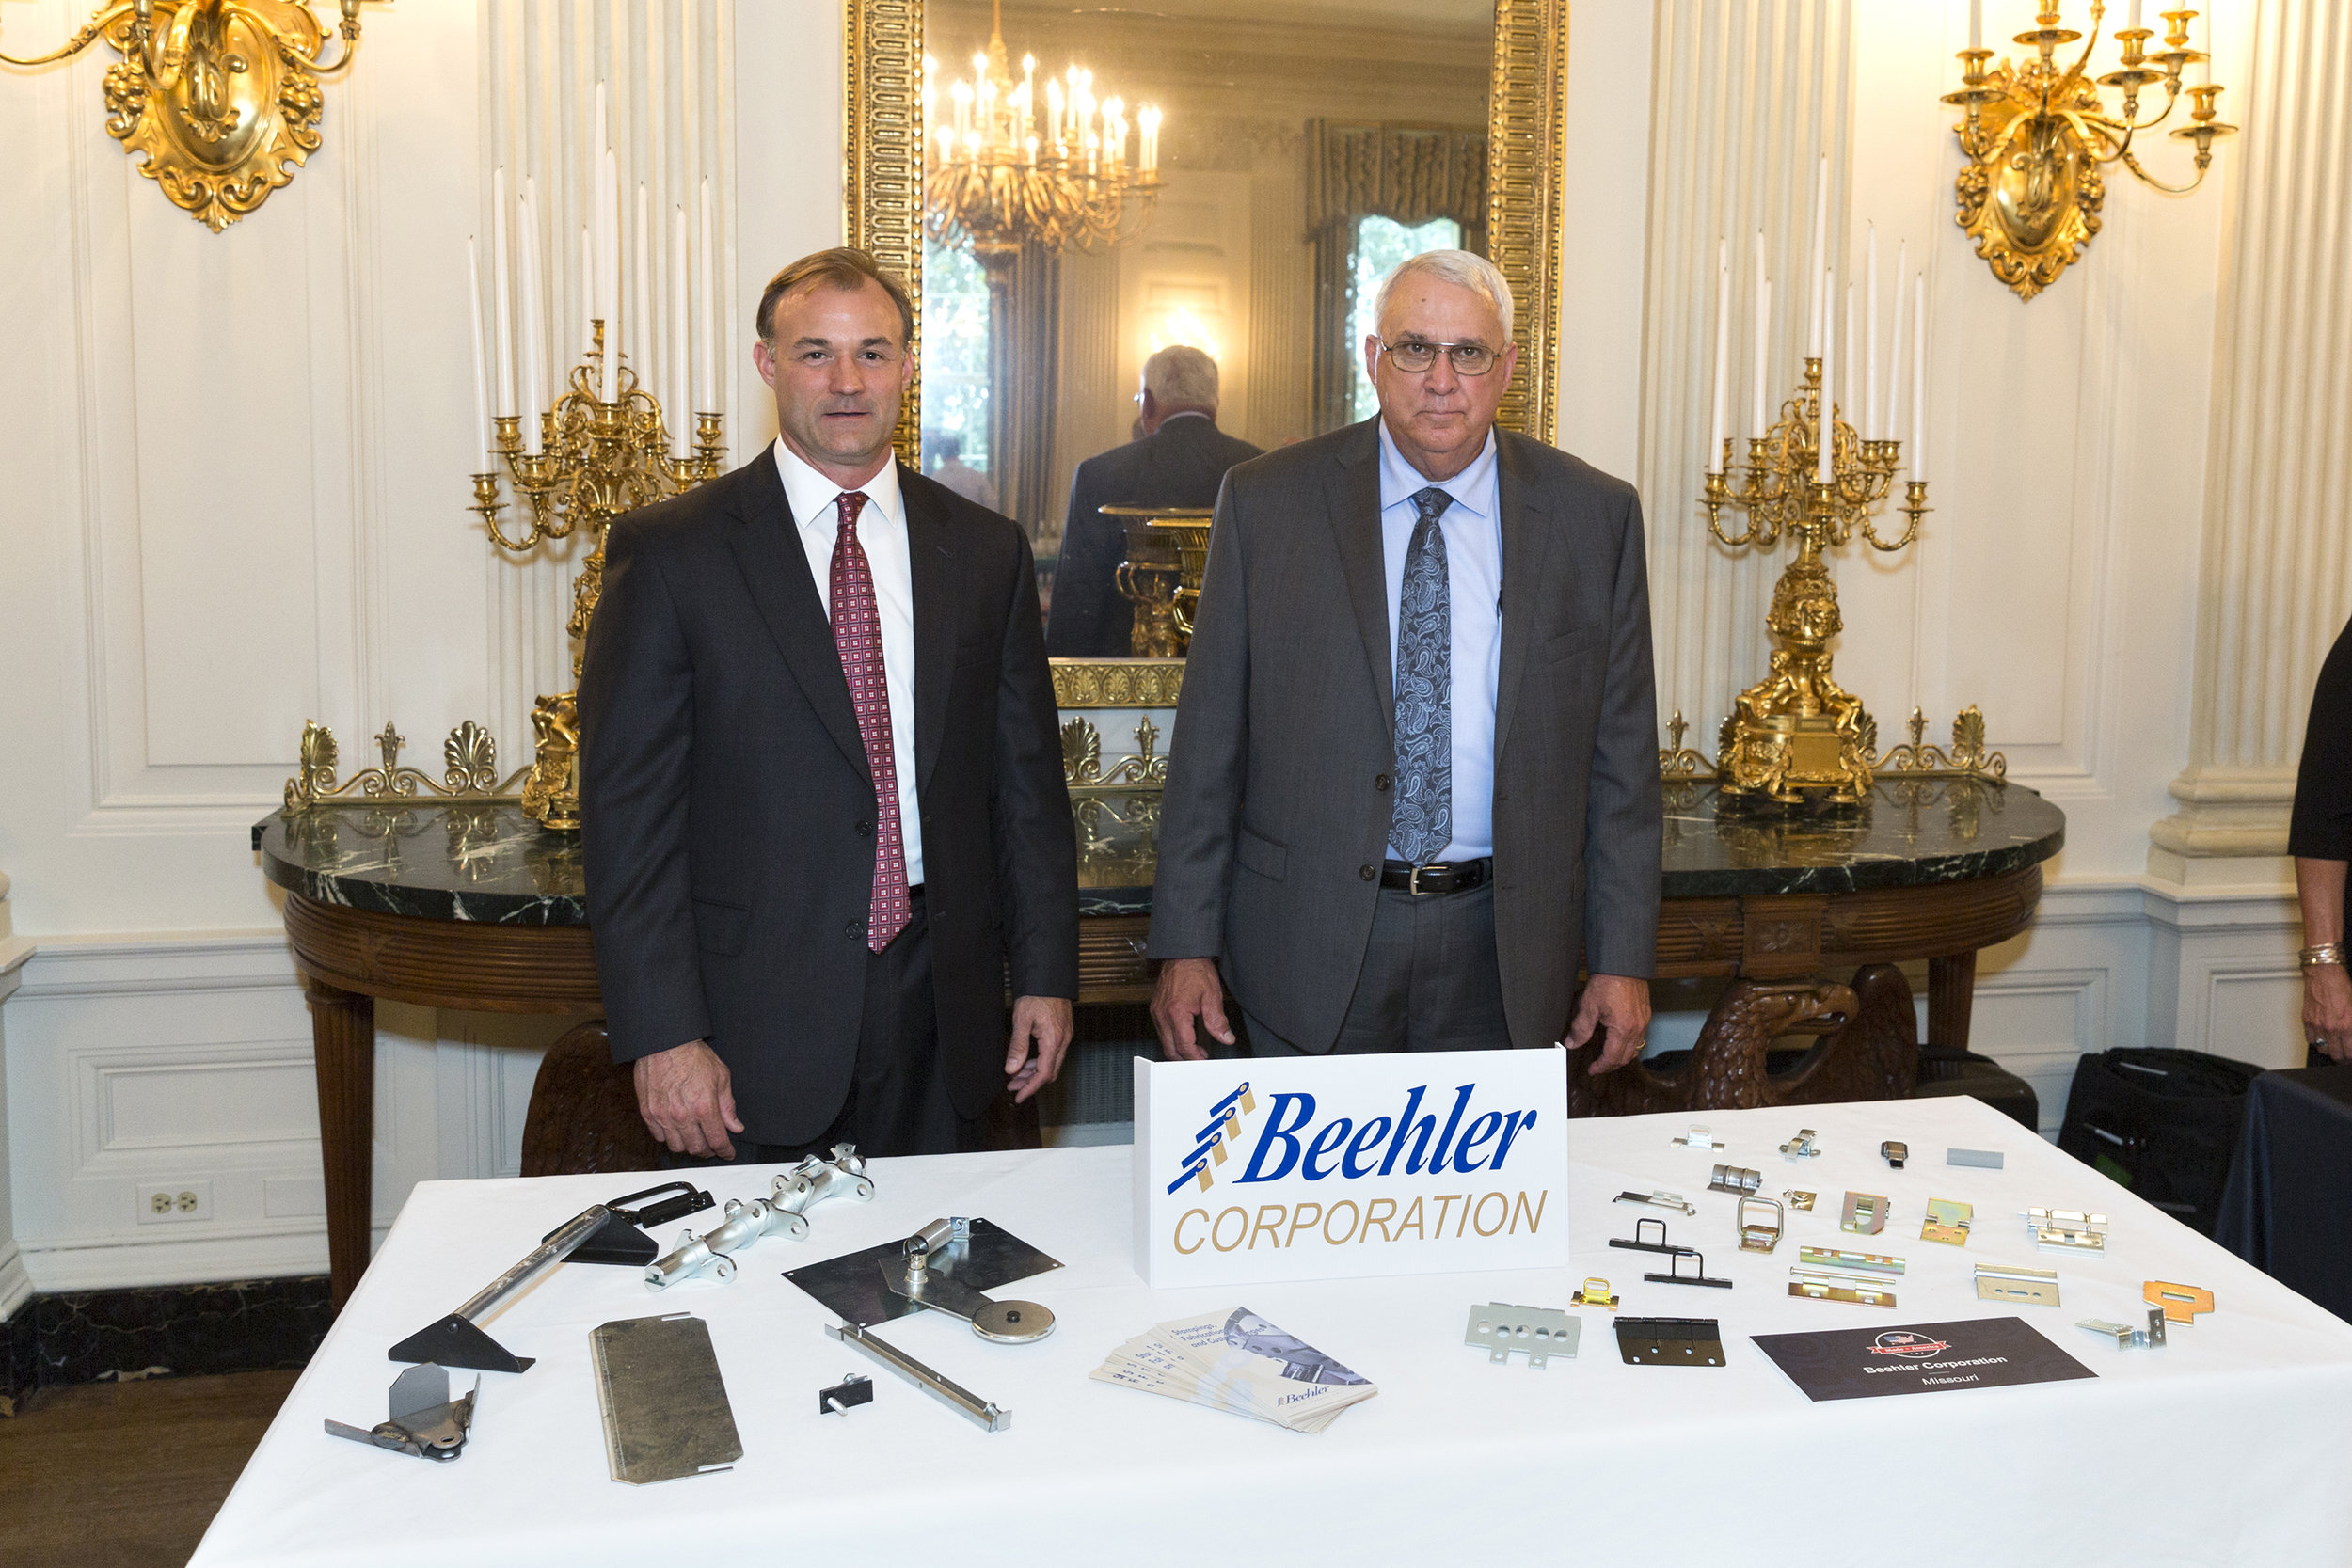 Beehler Corporation of Missouri, representatives Peter Fischer and Bill Manville, is one of the 50 state products on display during the Made in America Product Showcase, Monday, July 17, 2017 (Official White House Photo by Michael Lyons)